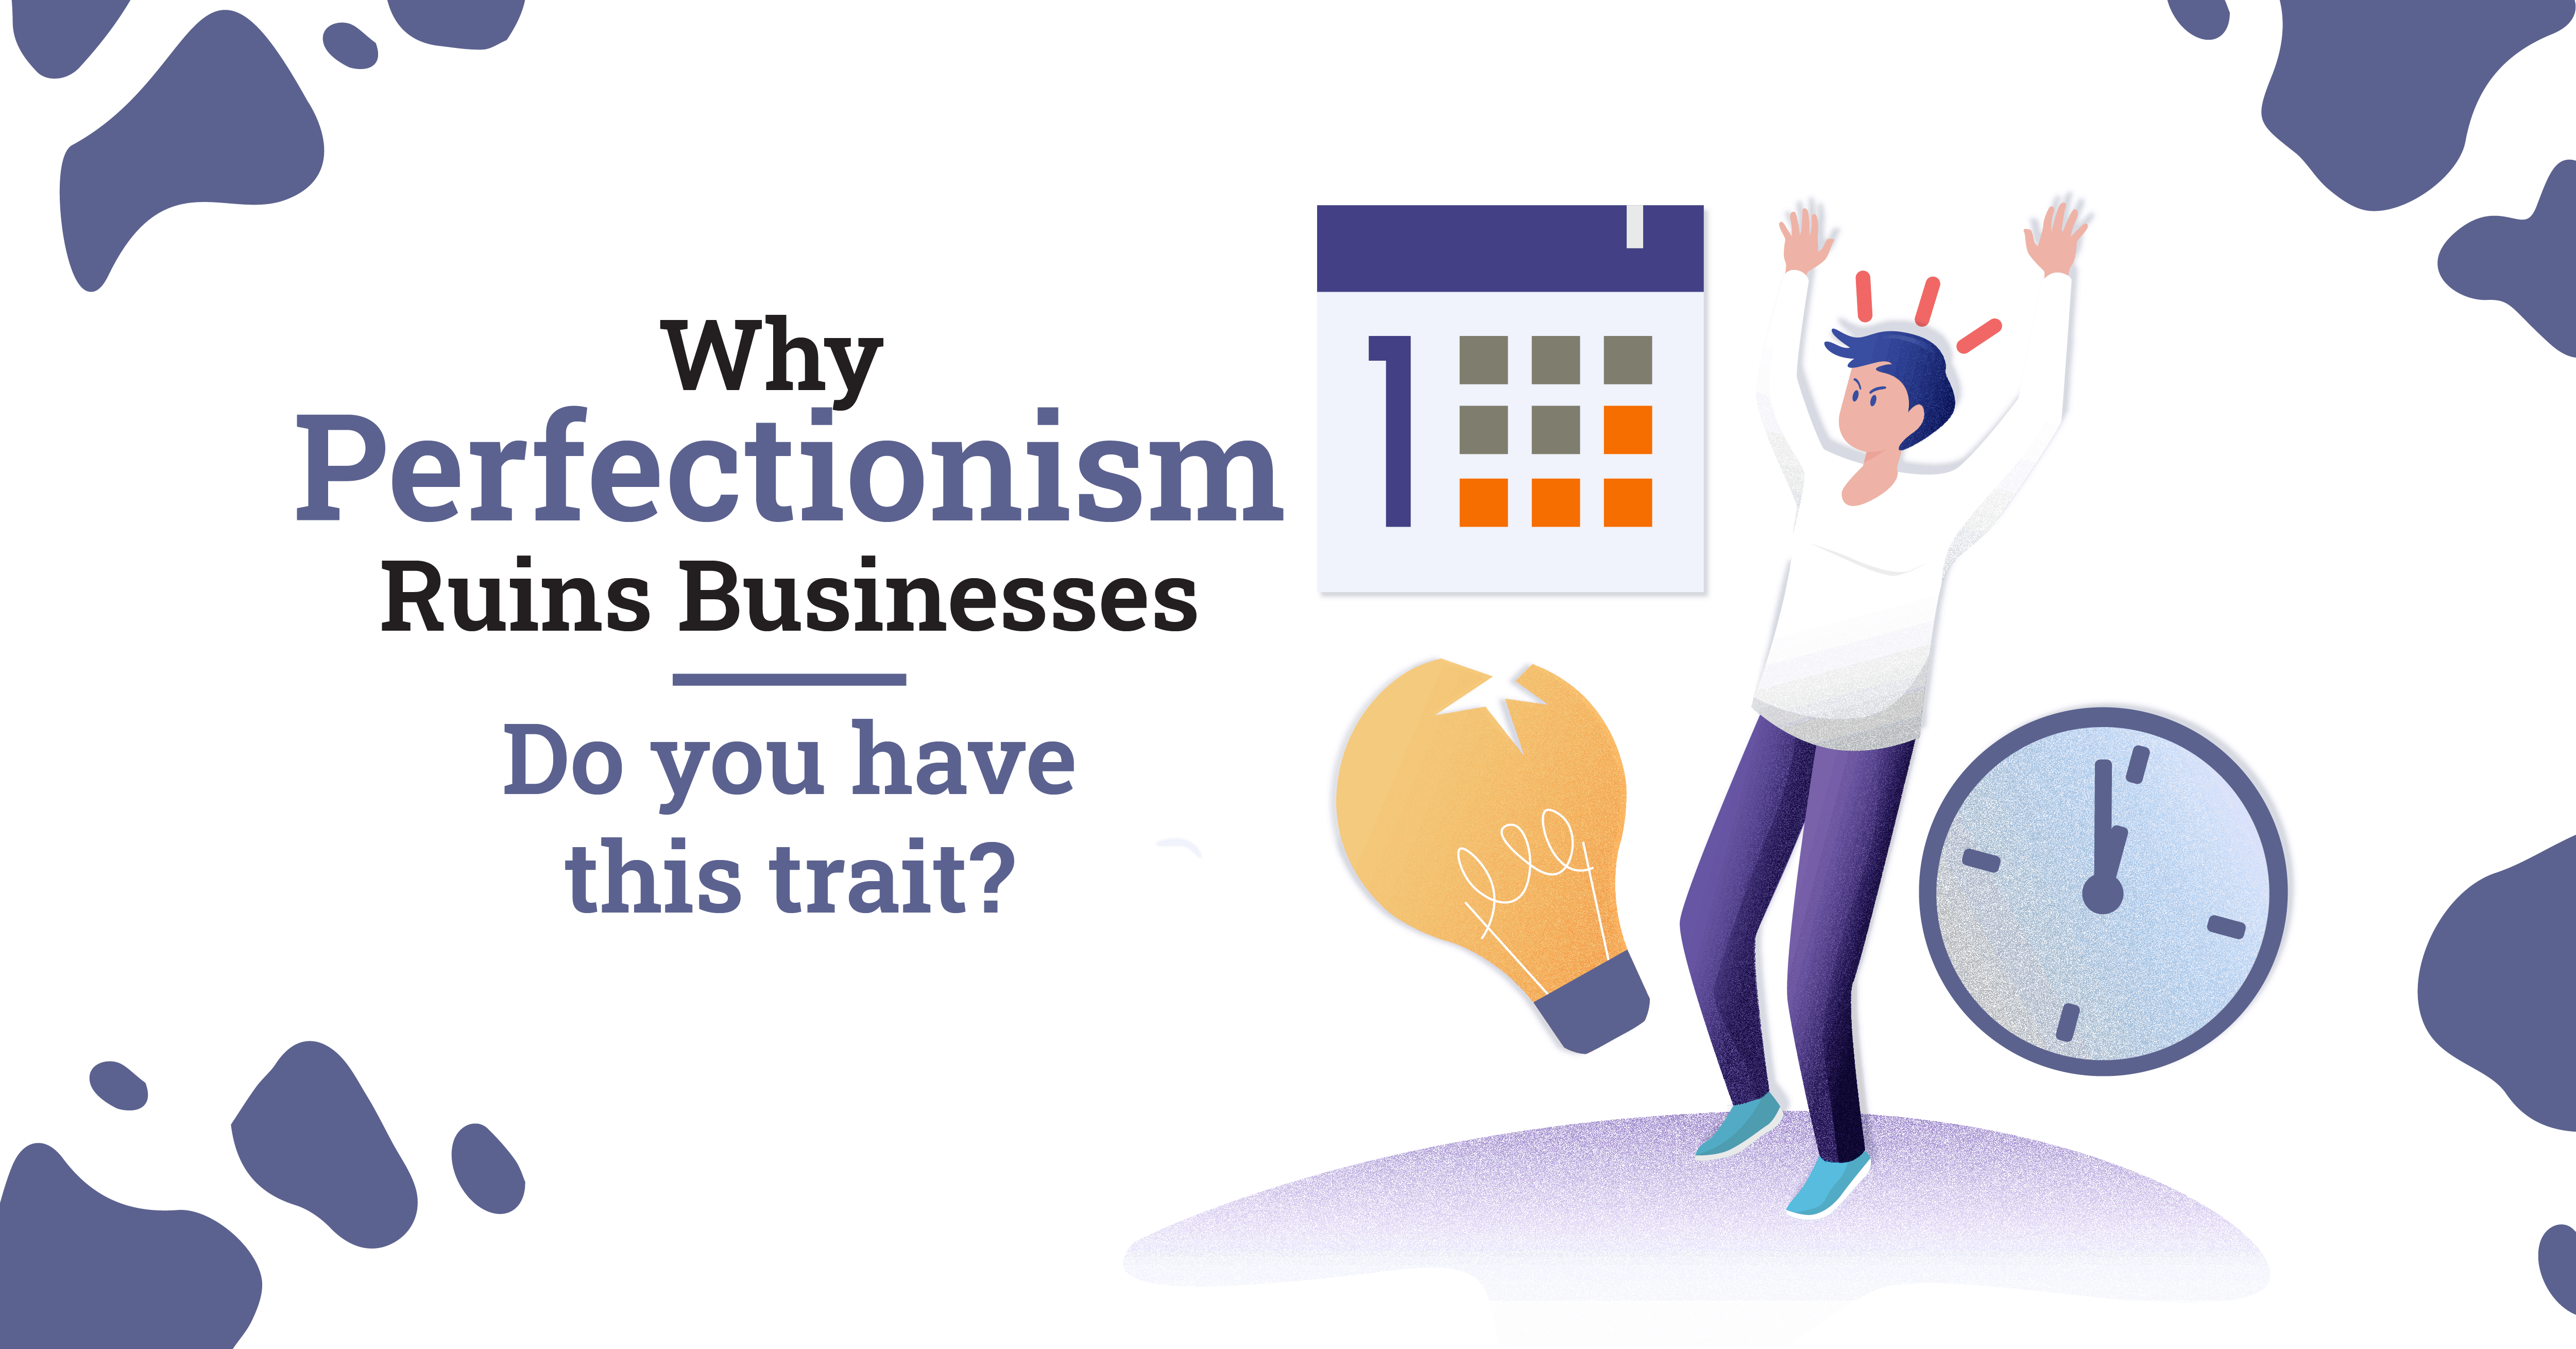 Perfectionism Ruins Businesses